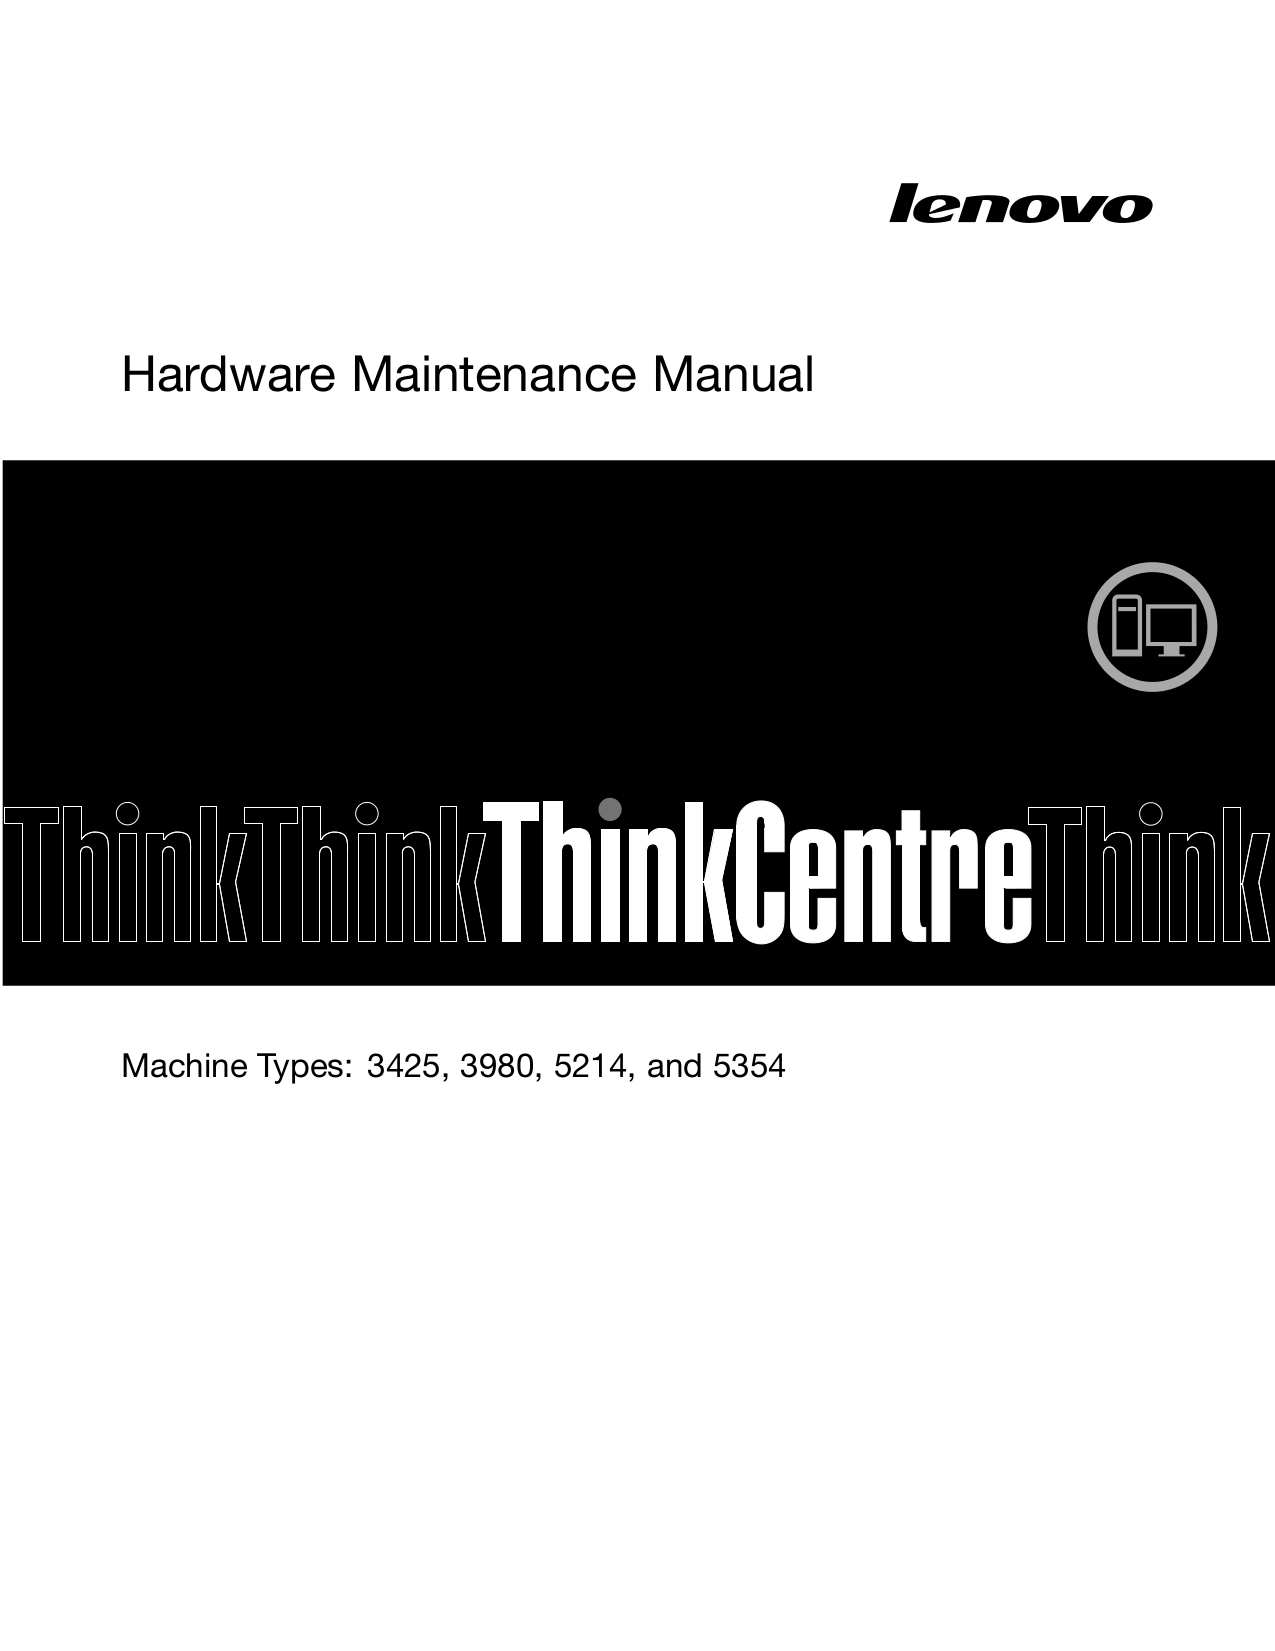 pdf for Lenovo Desktop ThinkCentre A58e 5354 manual